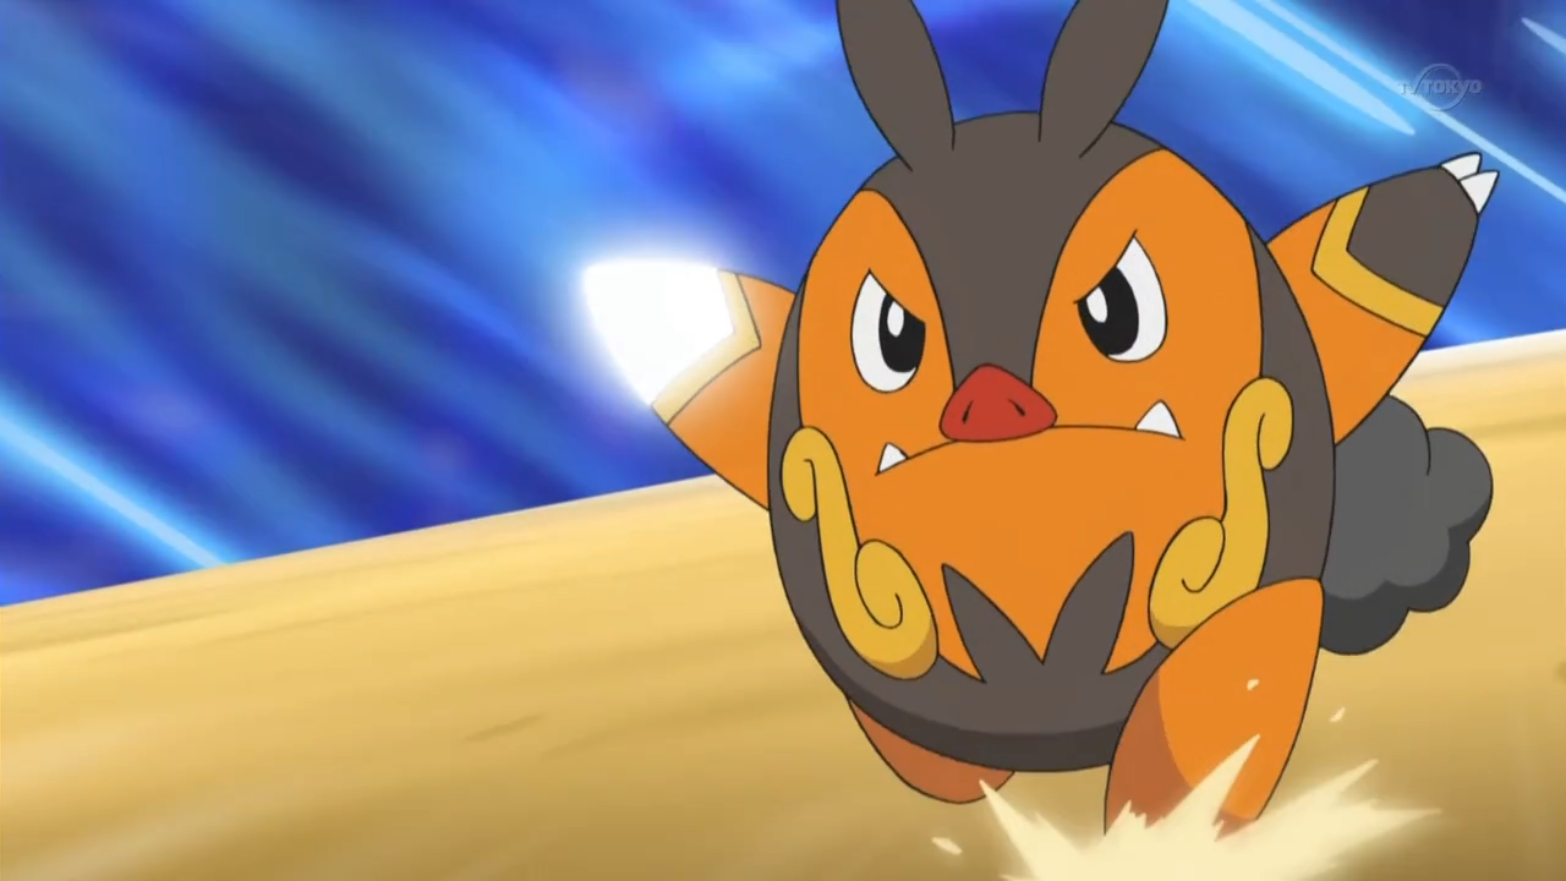 Ash's Pignite | Pokémon Wiki | FANDOM powered by Wikia